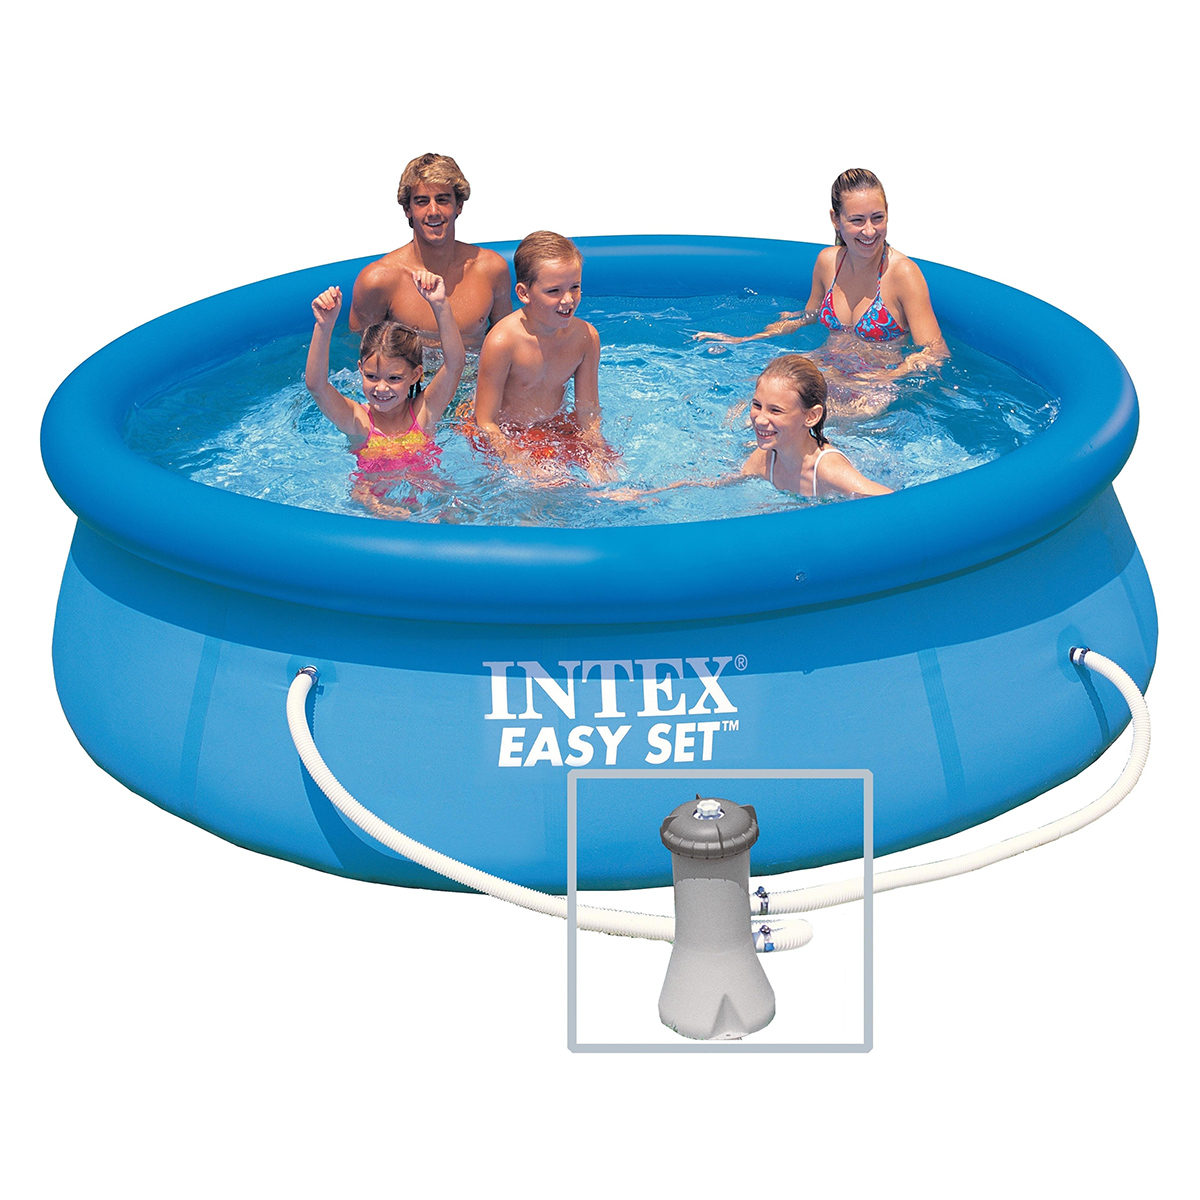 Intex 28122fr piscine hors sol autoportante ronde pvc for Prix piscine intex